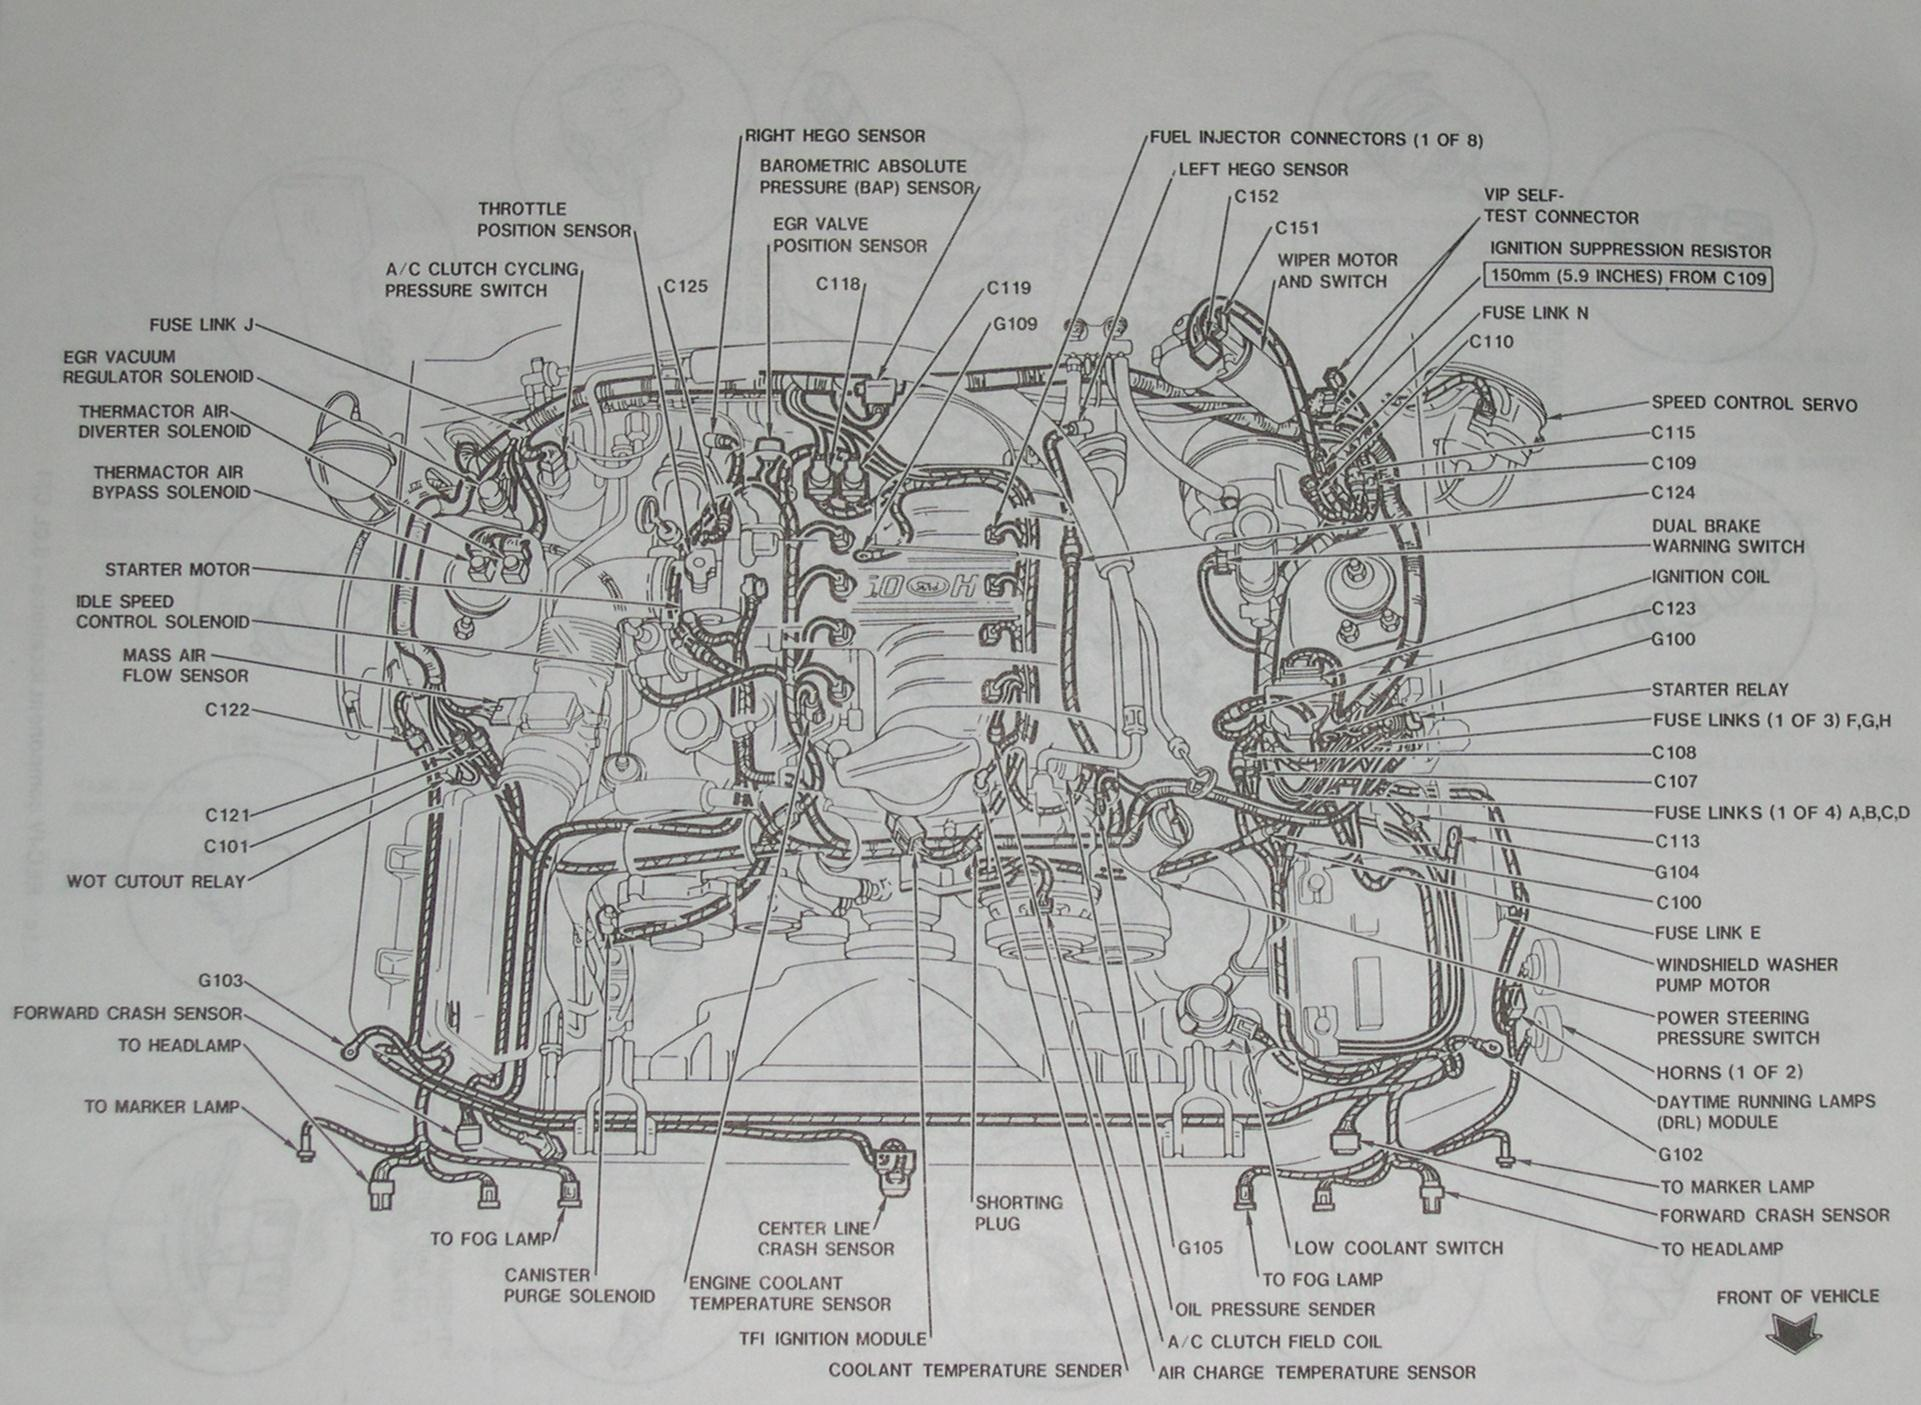 medium resolution of 95 mustang wiring harness electrical schematic wiring diagram 1995 ford mustang gt wiring harness 1990 mustang